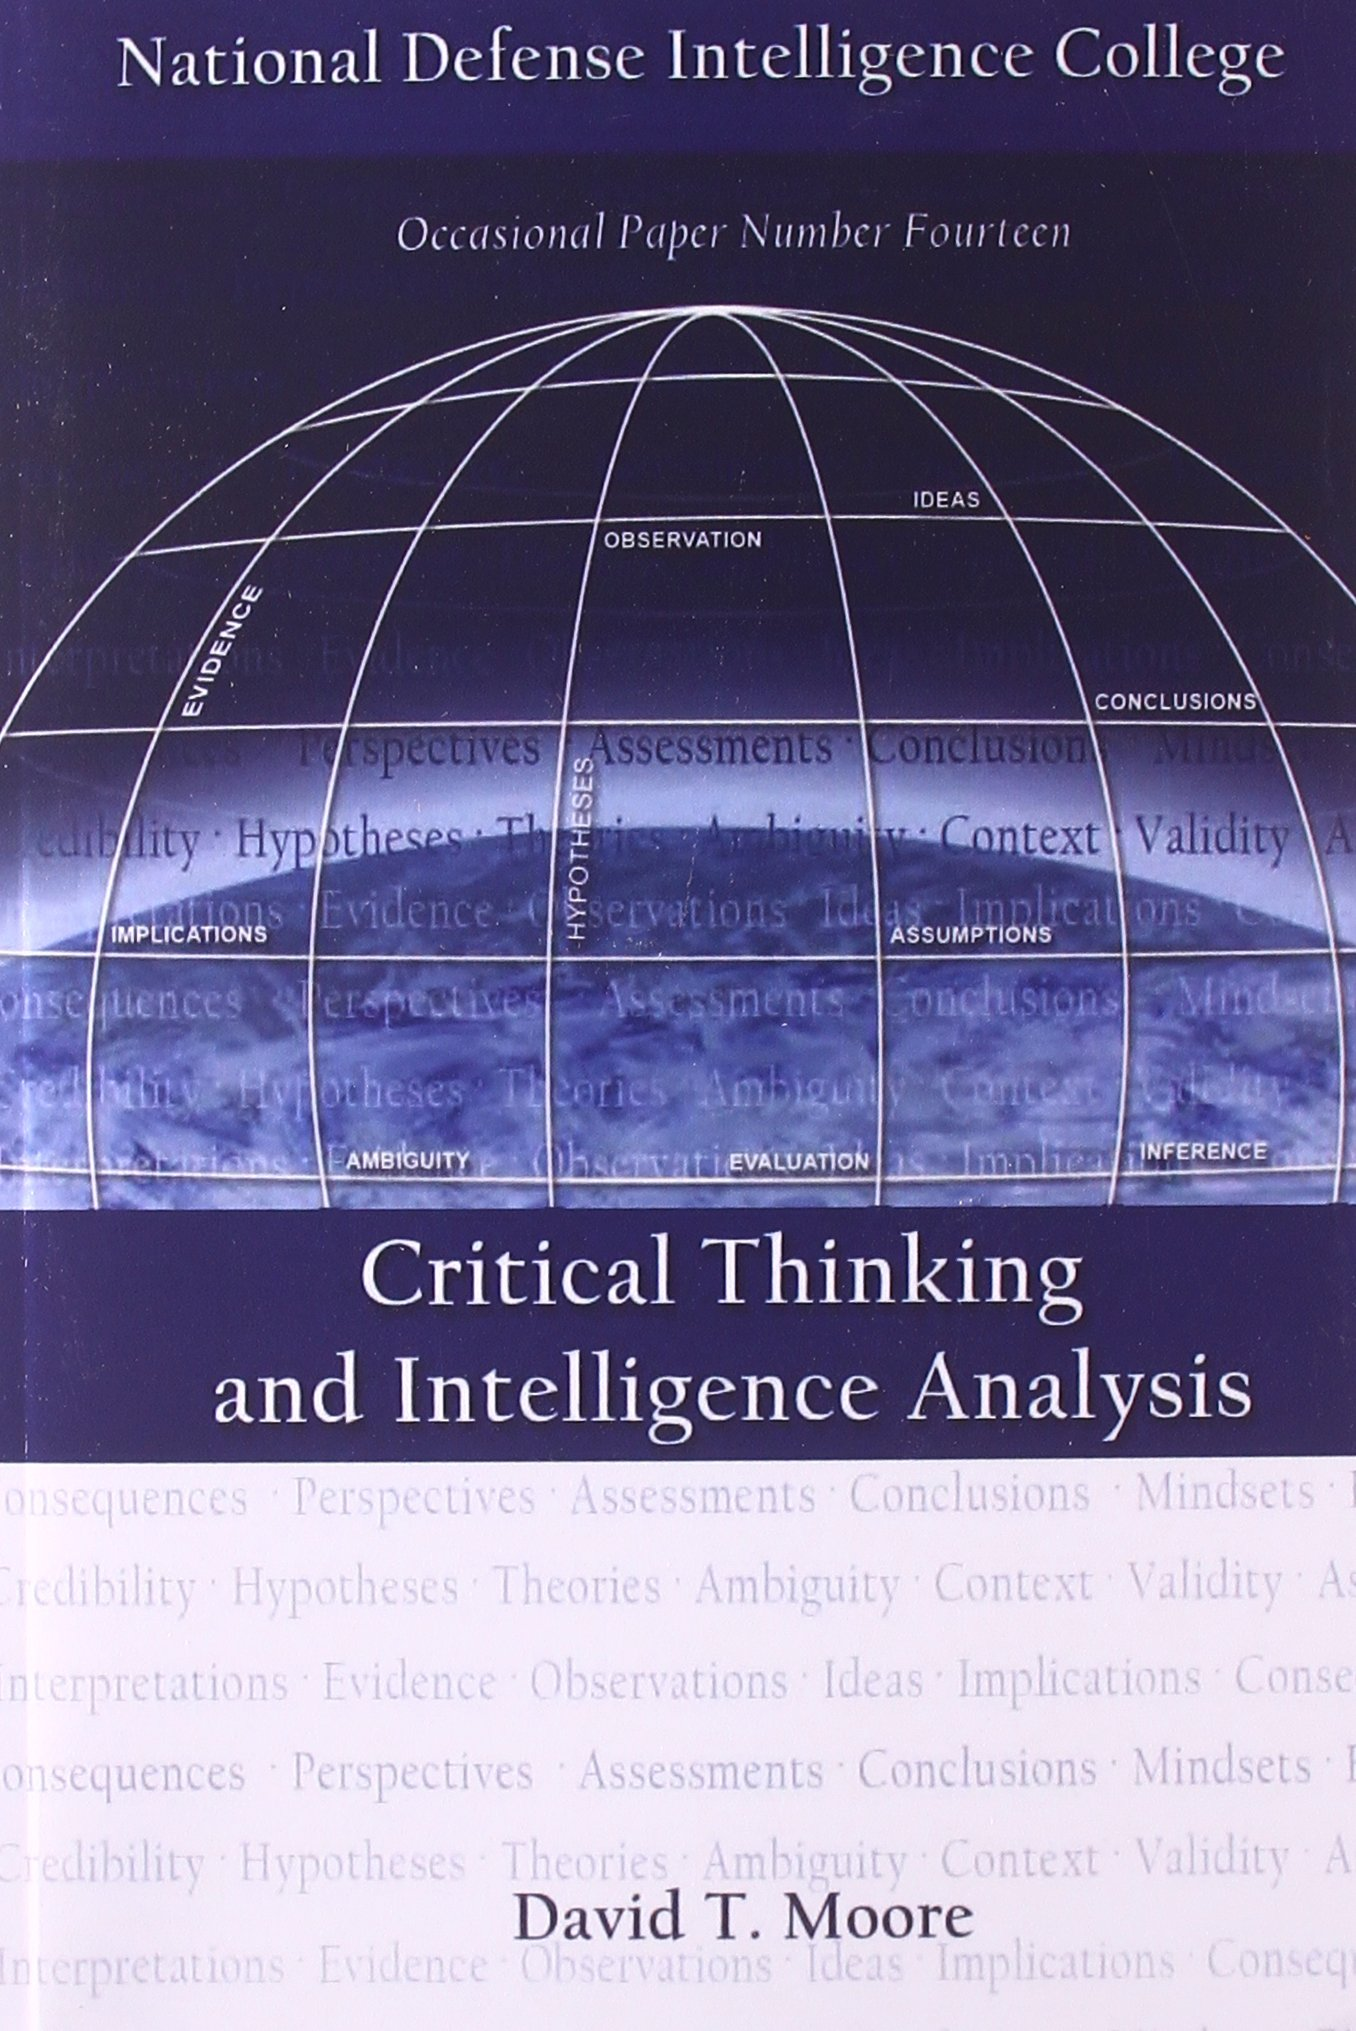 critical thinking in the intelligence community Critical thinking and intelligence analysis (occasional paper) [david t moore,   agency/author bio: david t moore is a career senior intelligence analyst and.